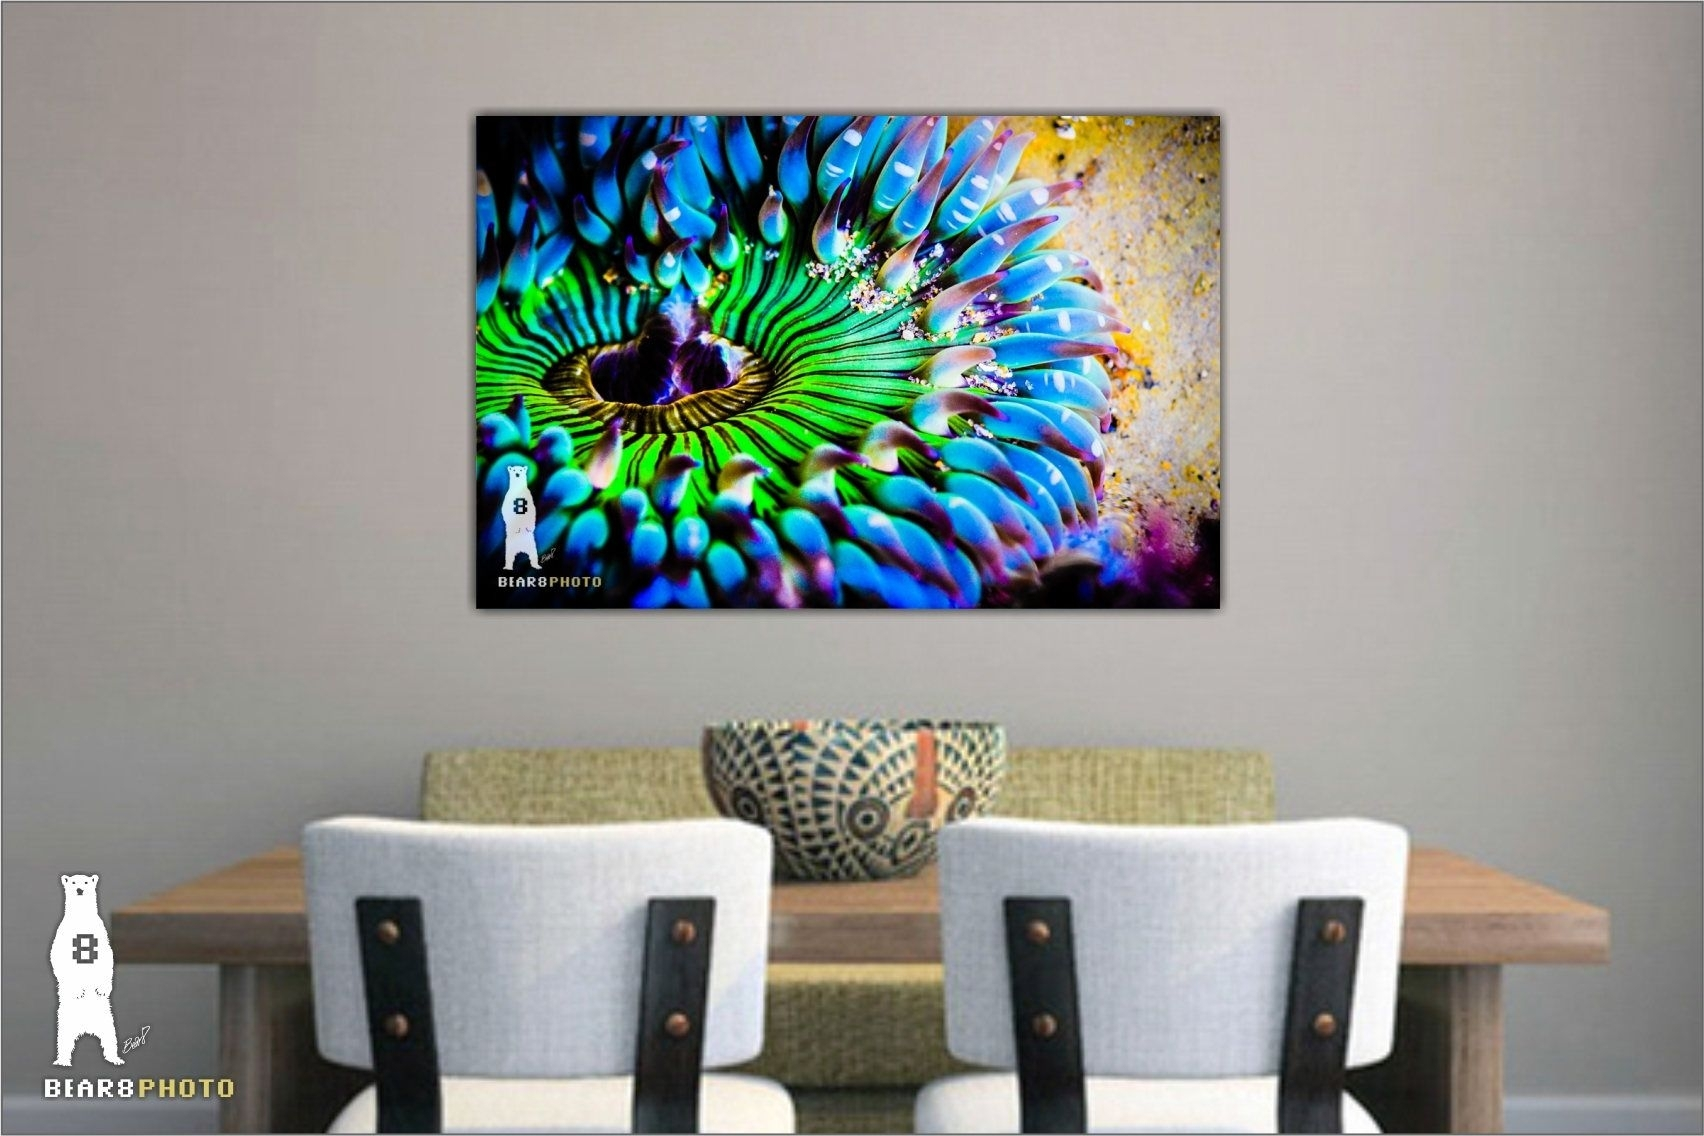 Colorful Wall Art, Bright Wall Art, Sea Life Prints, Bold And Pertaining To Most Popular Colorful Wall Art (View 16 of 20)